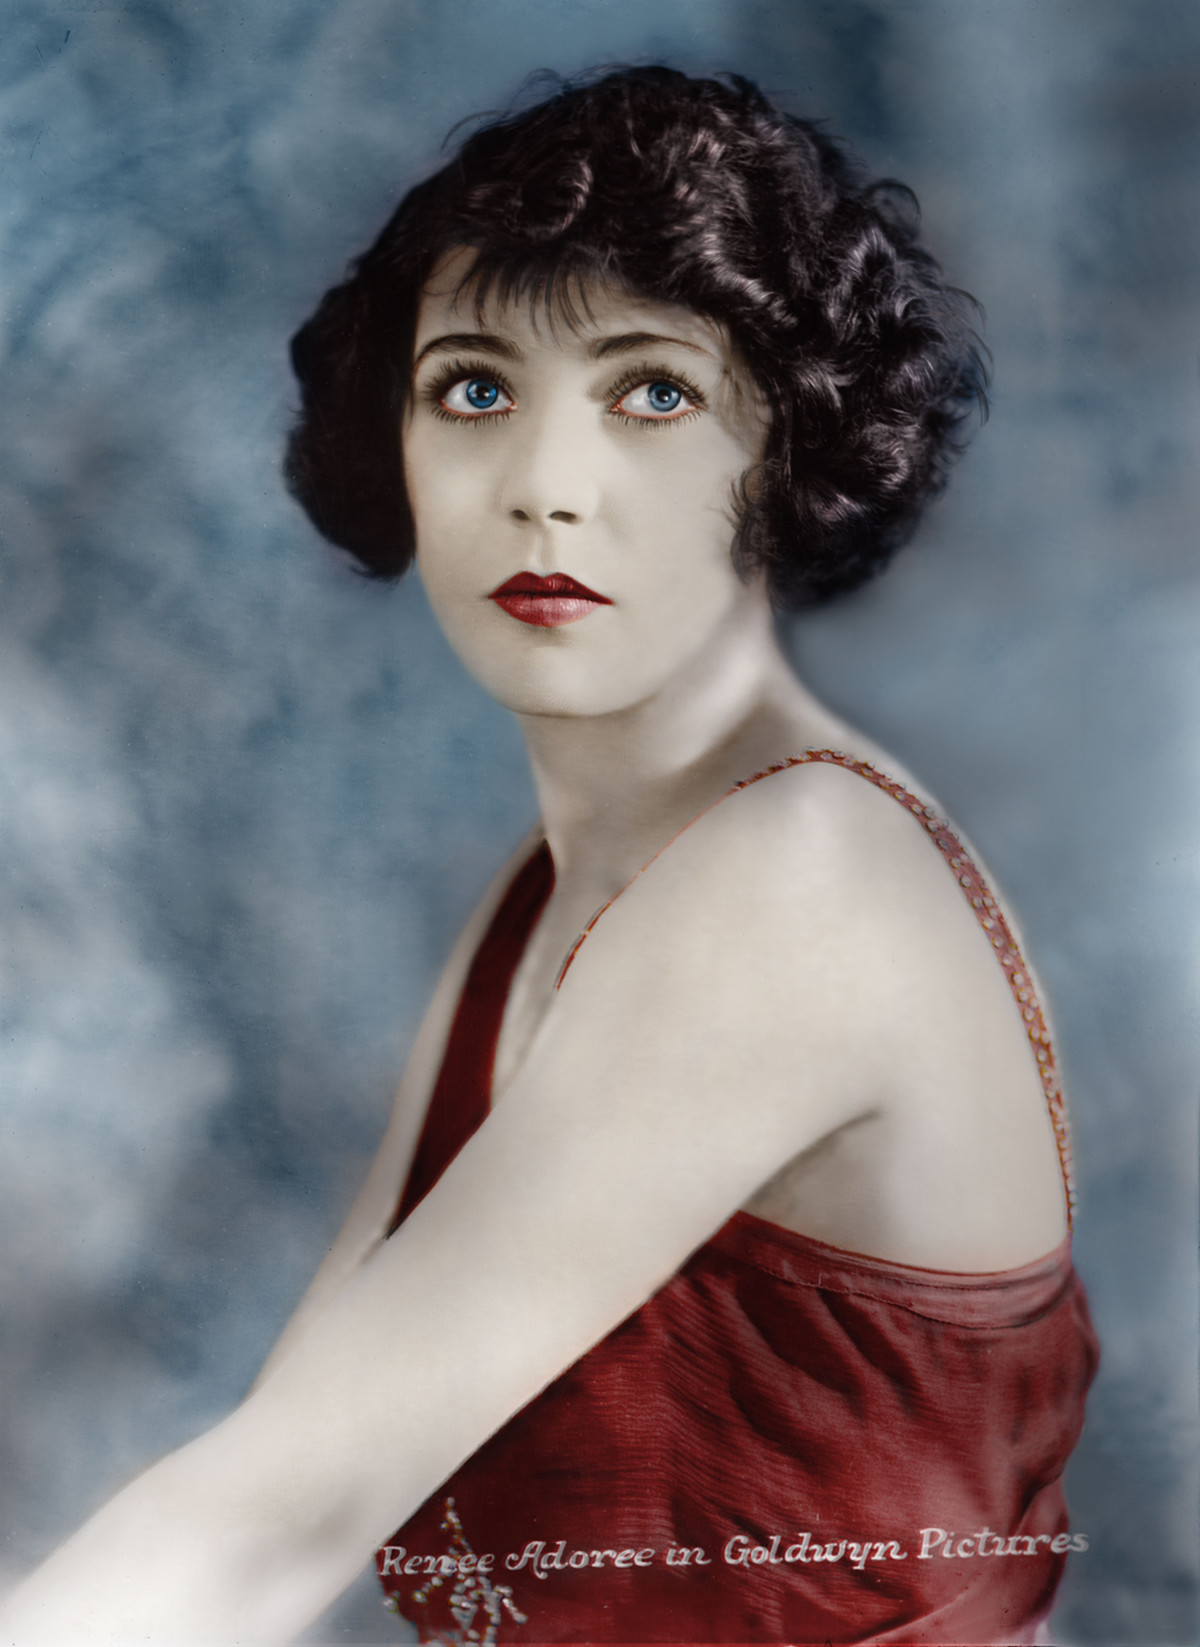 Renée Adorée, French actress who appeared in Hollywood silent movies during the 1920s